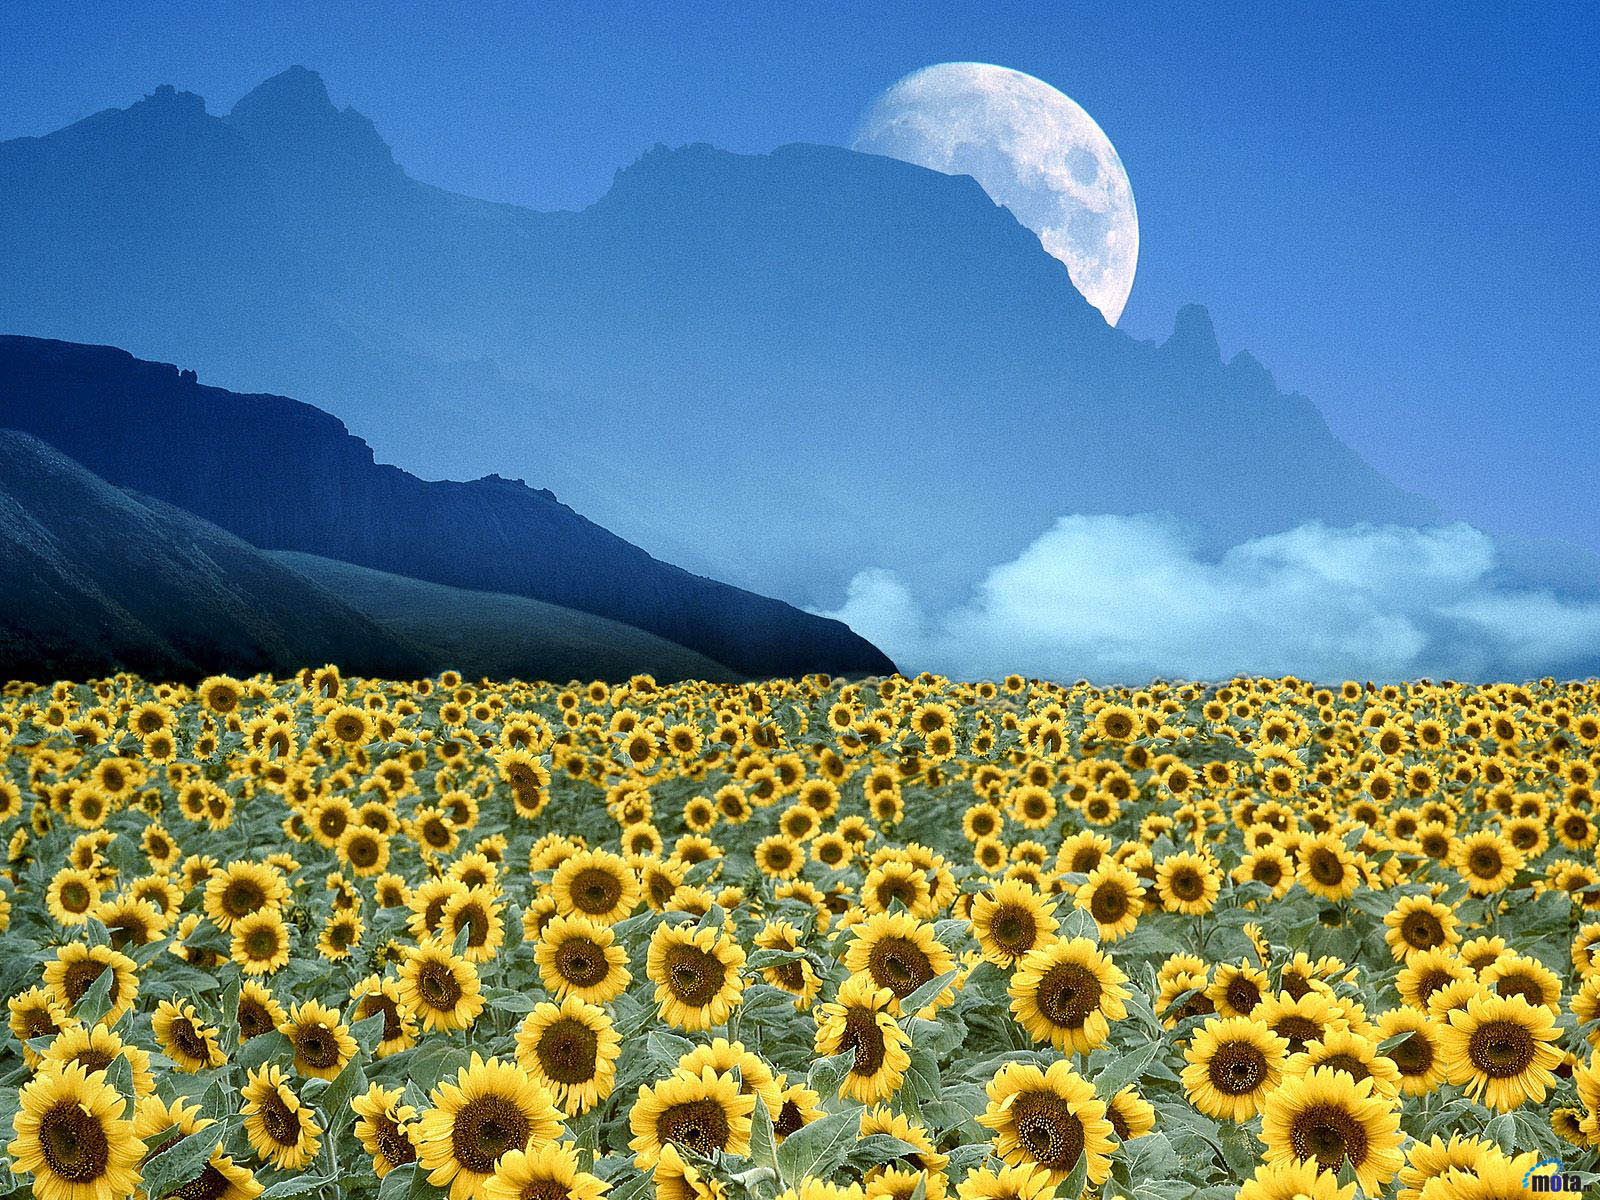 Wallpaper Moon mountains sunflower field Sunflowers field 1600x1200